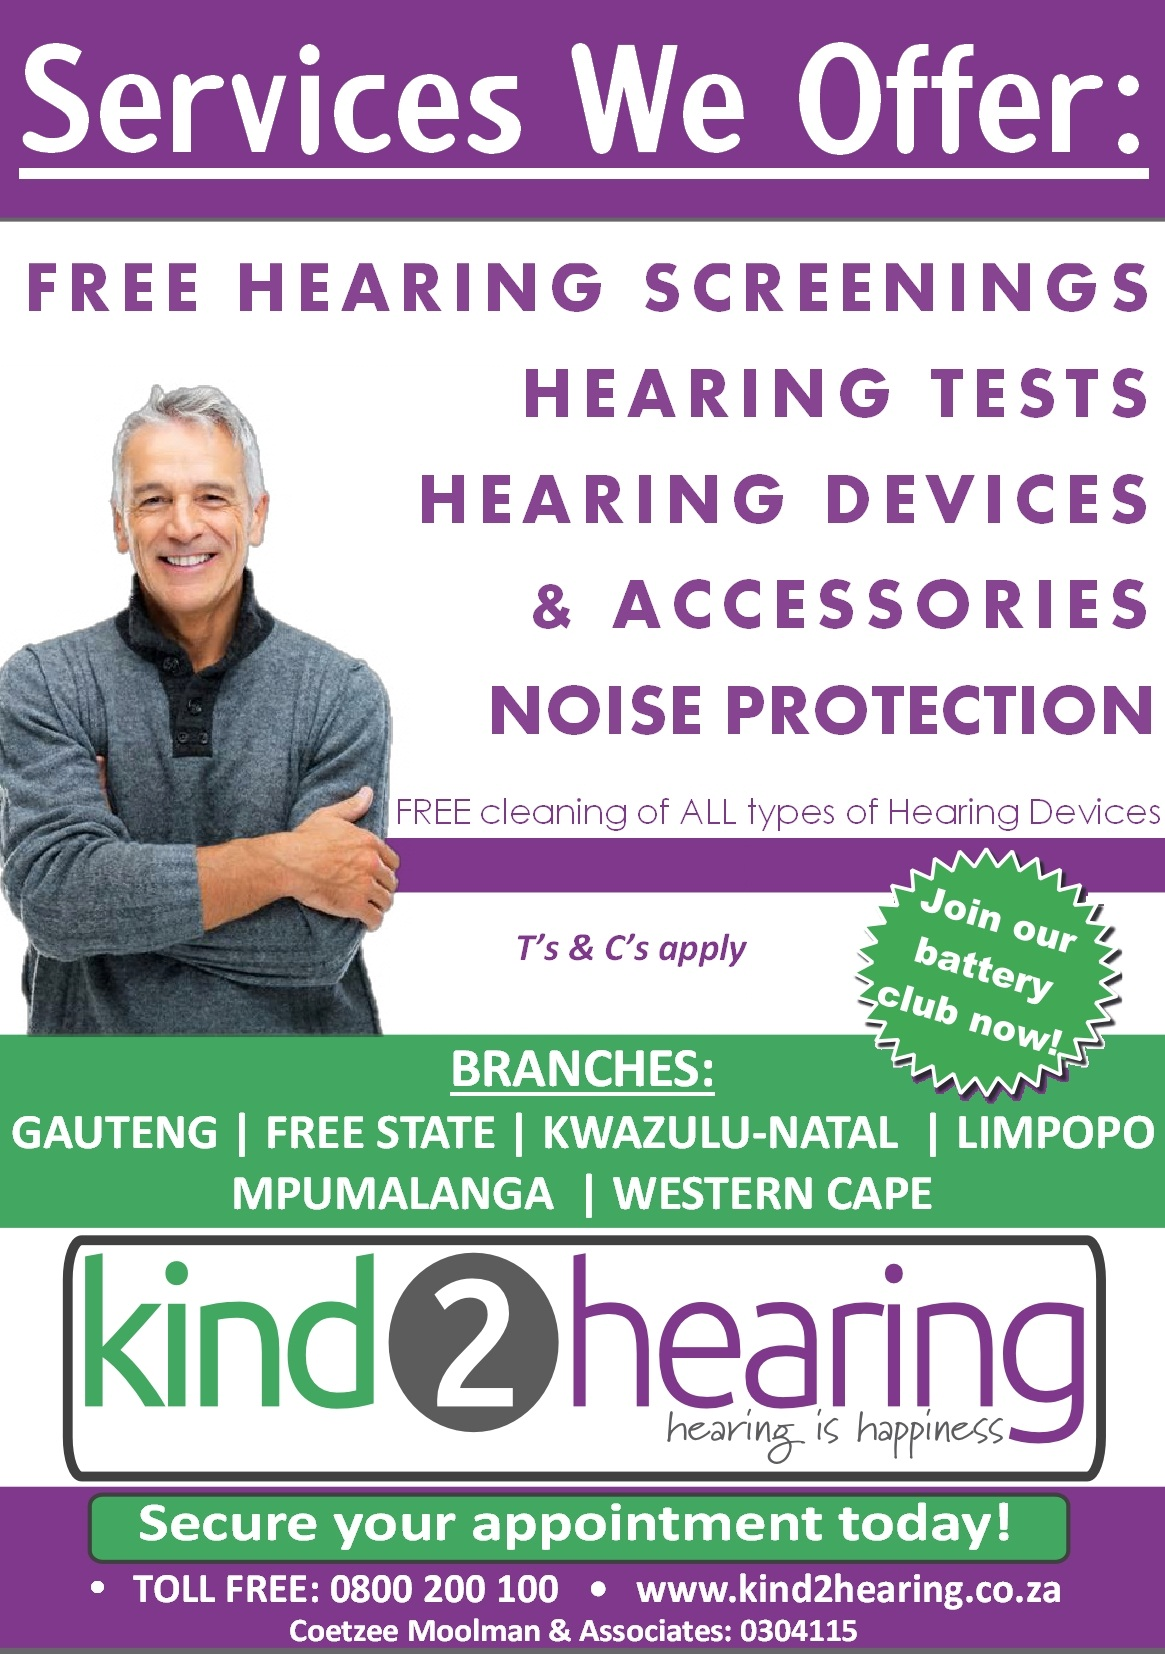 Kind2Hearing brochure